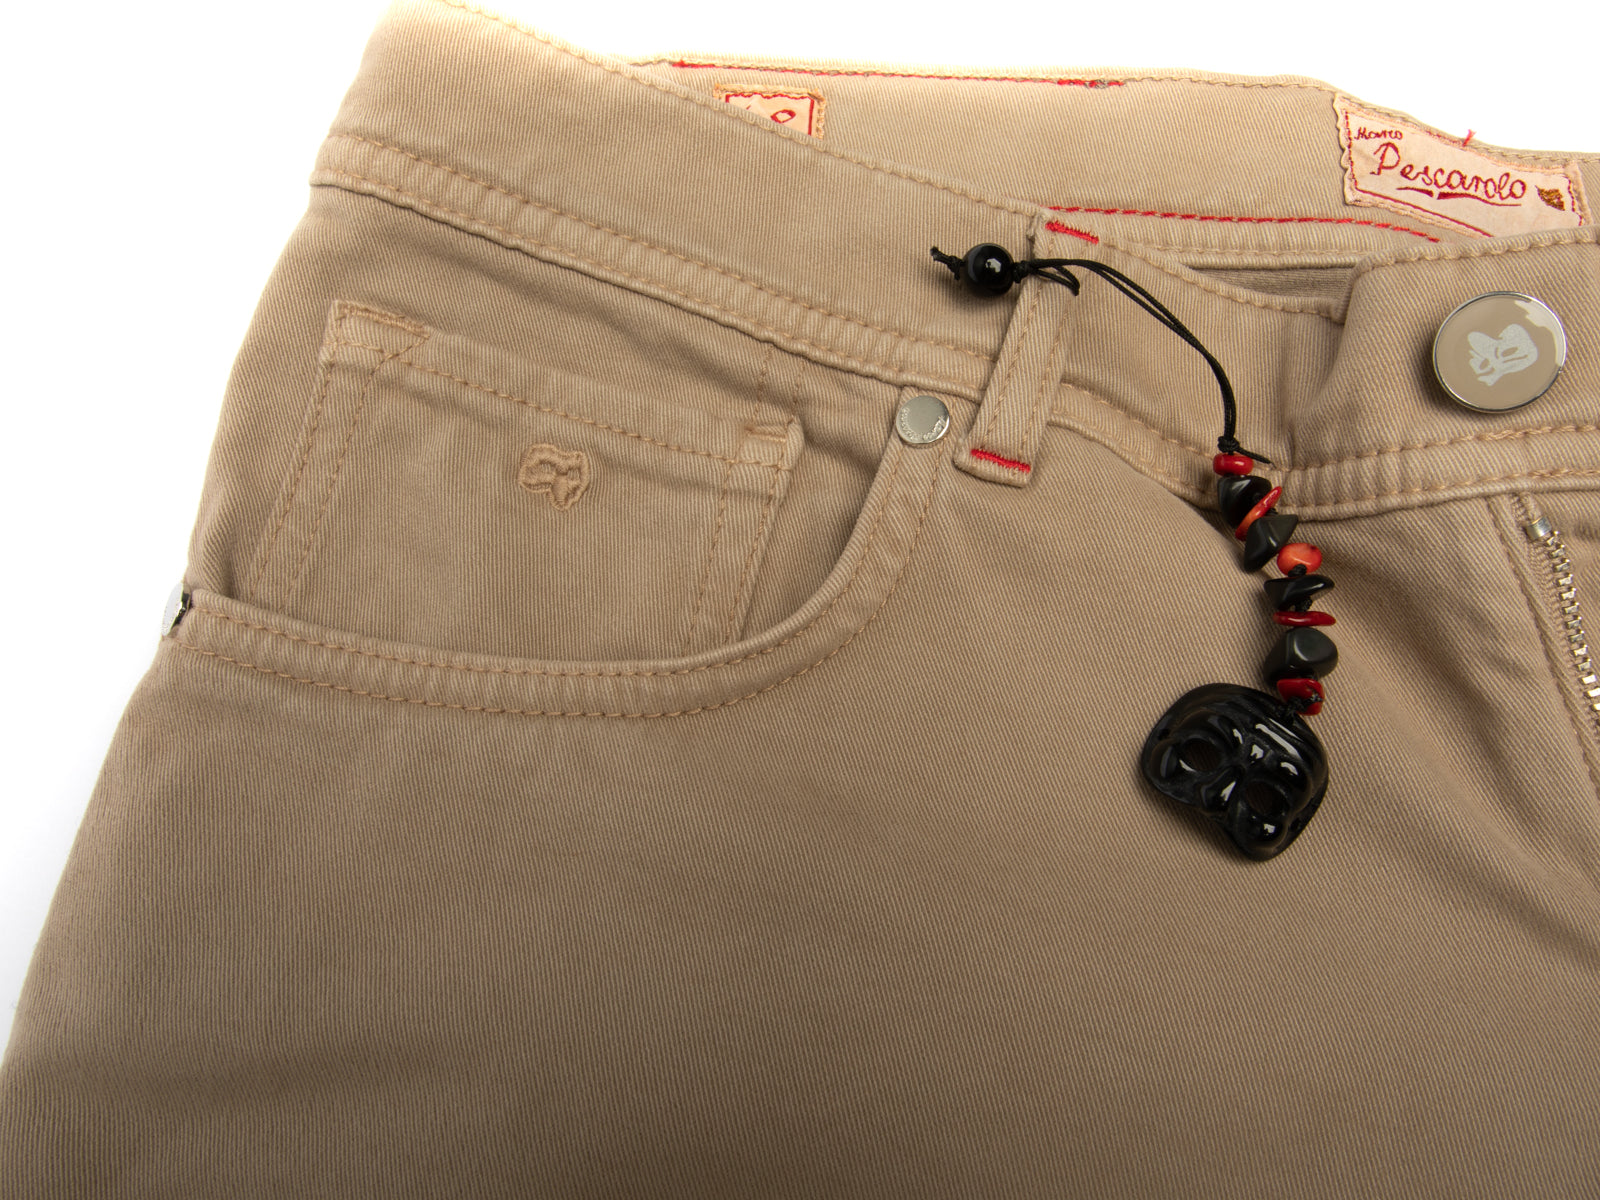 Cotton/Cashmere Stretch Twill 5 Pocket